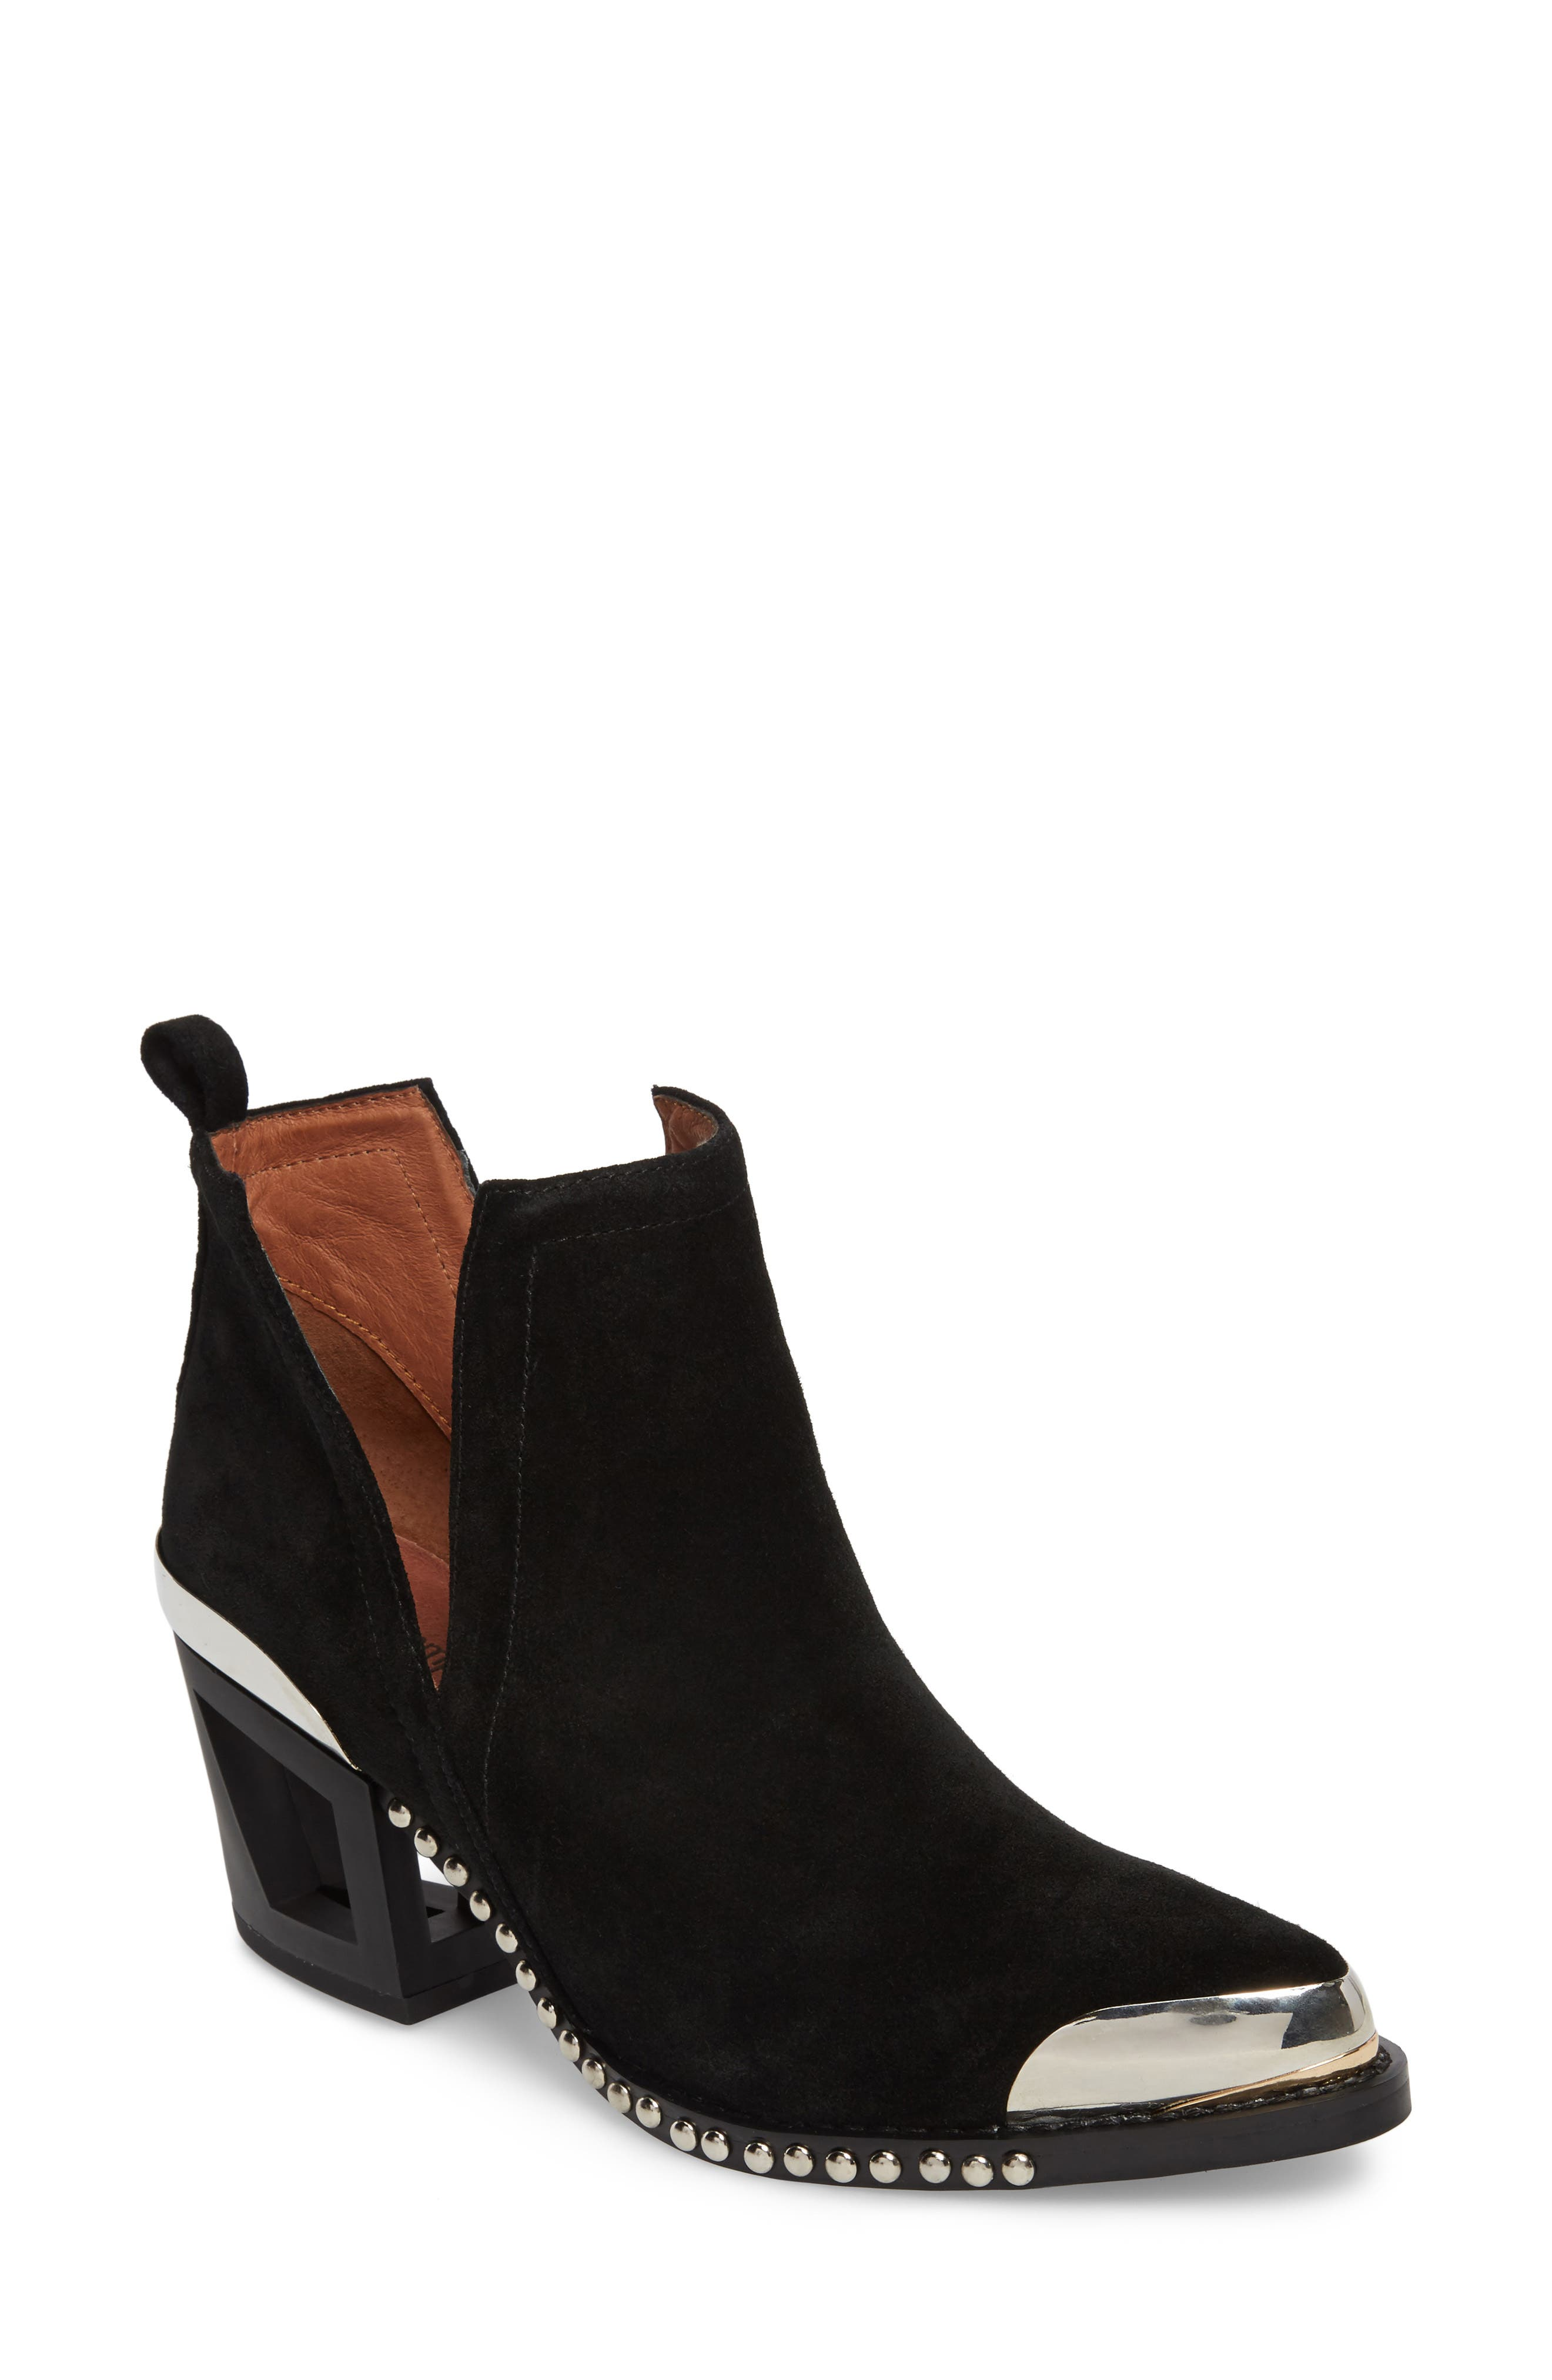 Optimum Studded Snake Textured Bootie,                             Main thumbnail 1, color,                             002